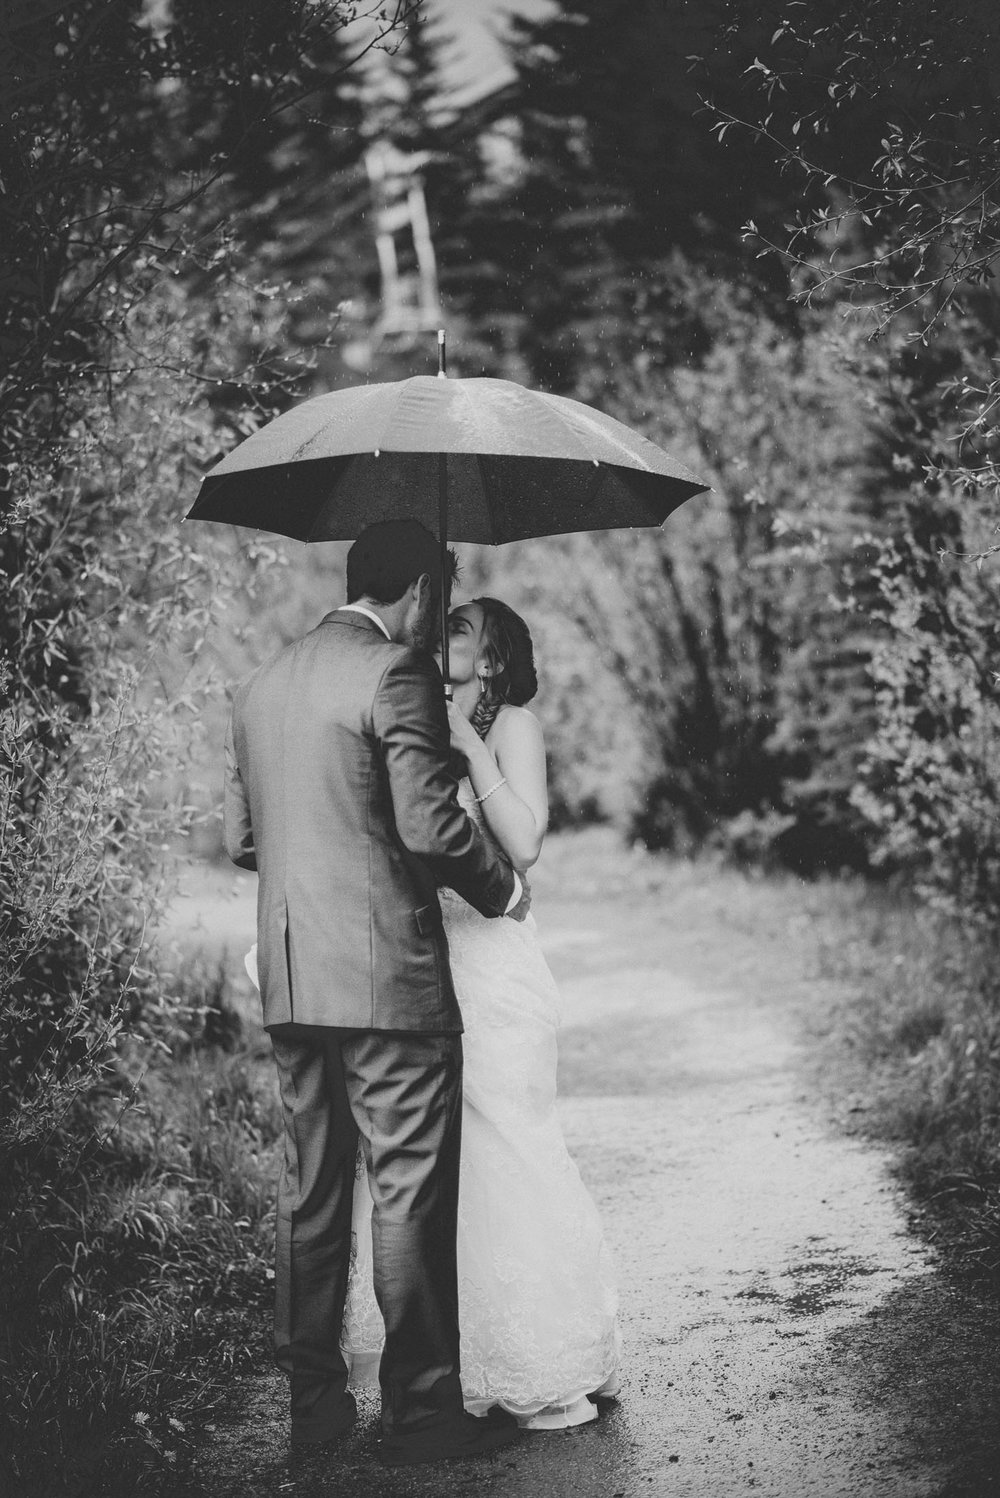 125elopement-photographer-colorado-telluride_wedding_photographer_colorado_mountain_wedding_photographer_brie&tyler_0709_vintage_black_and_white_film.jpg